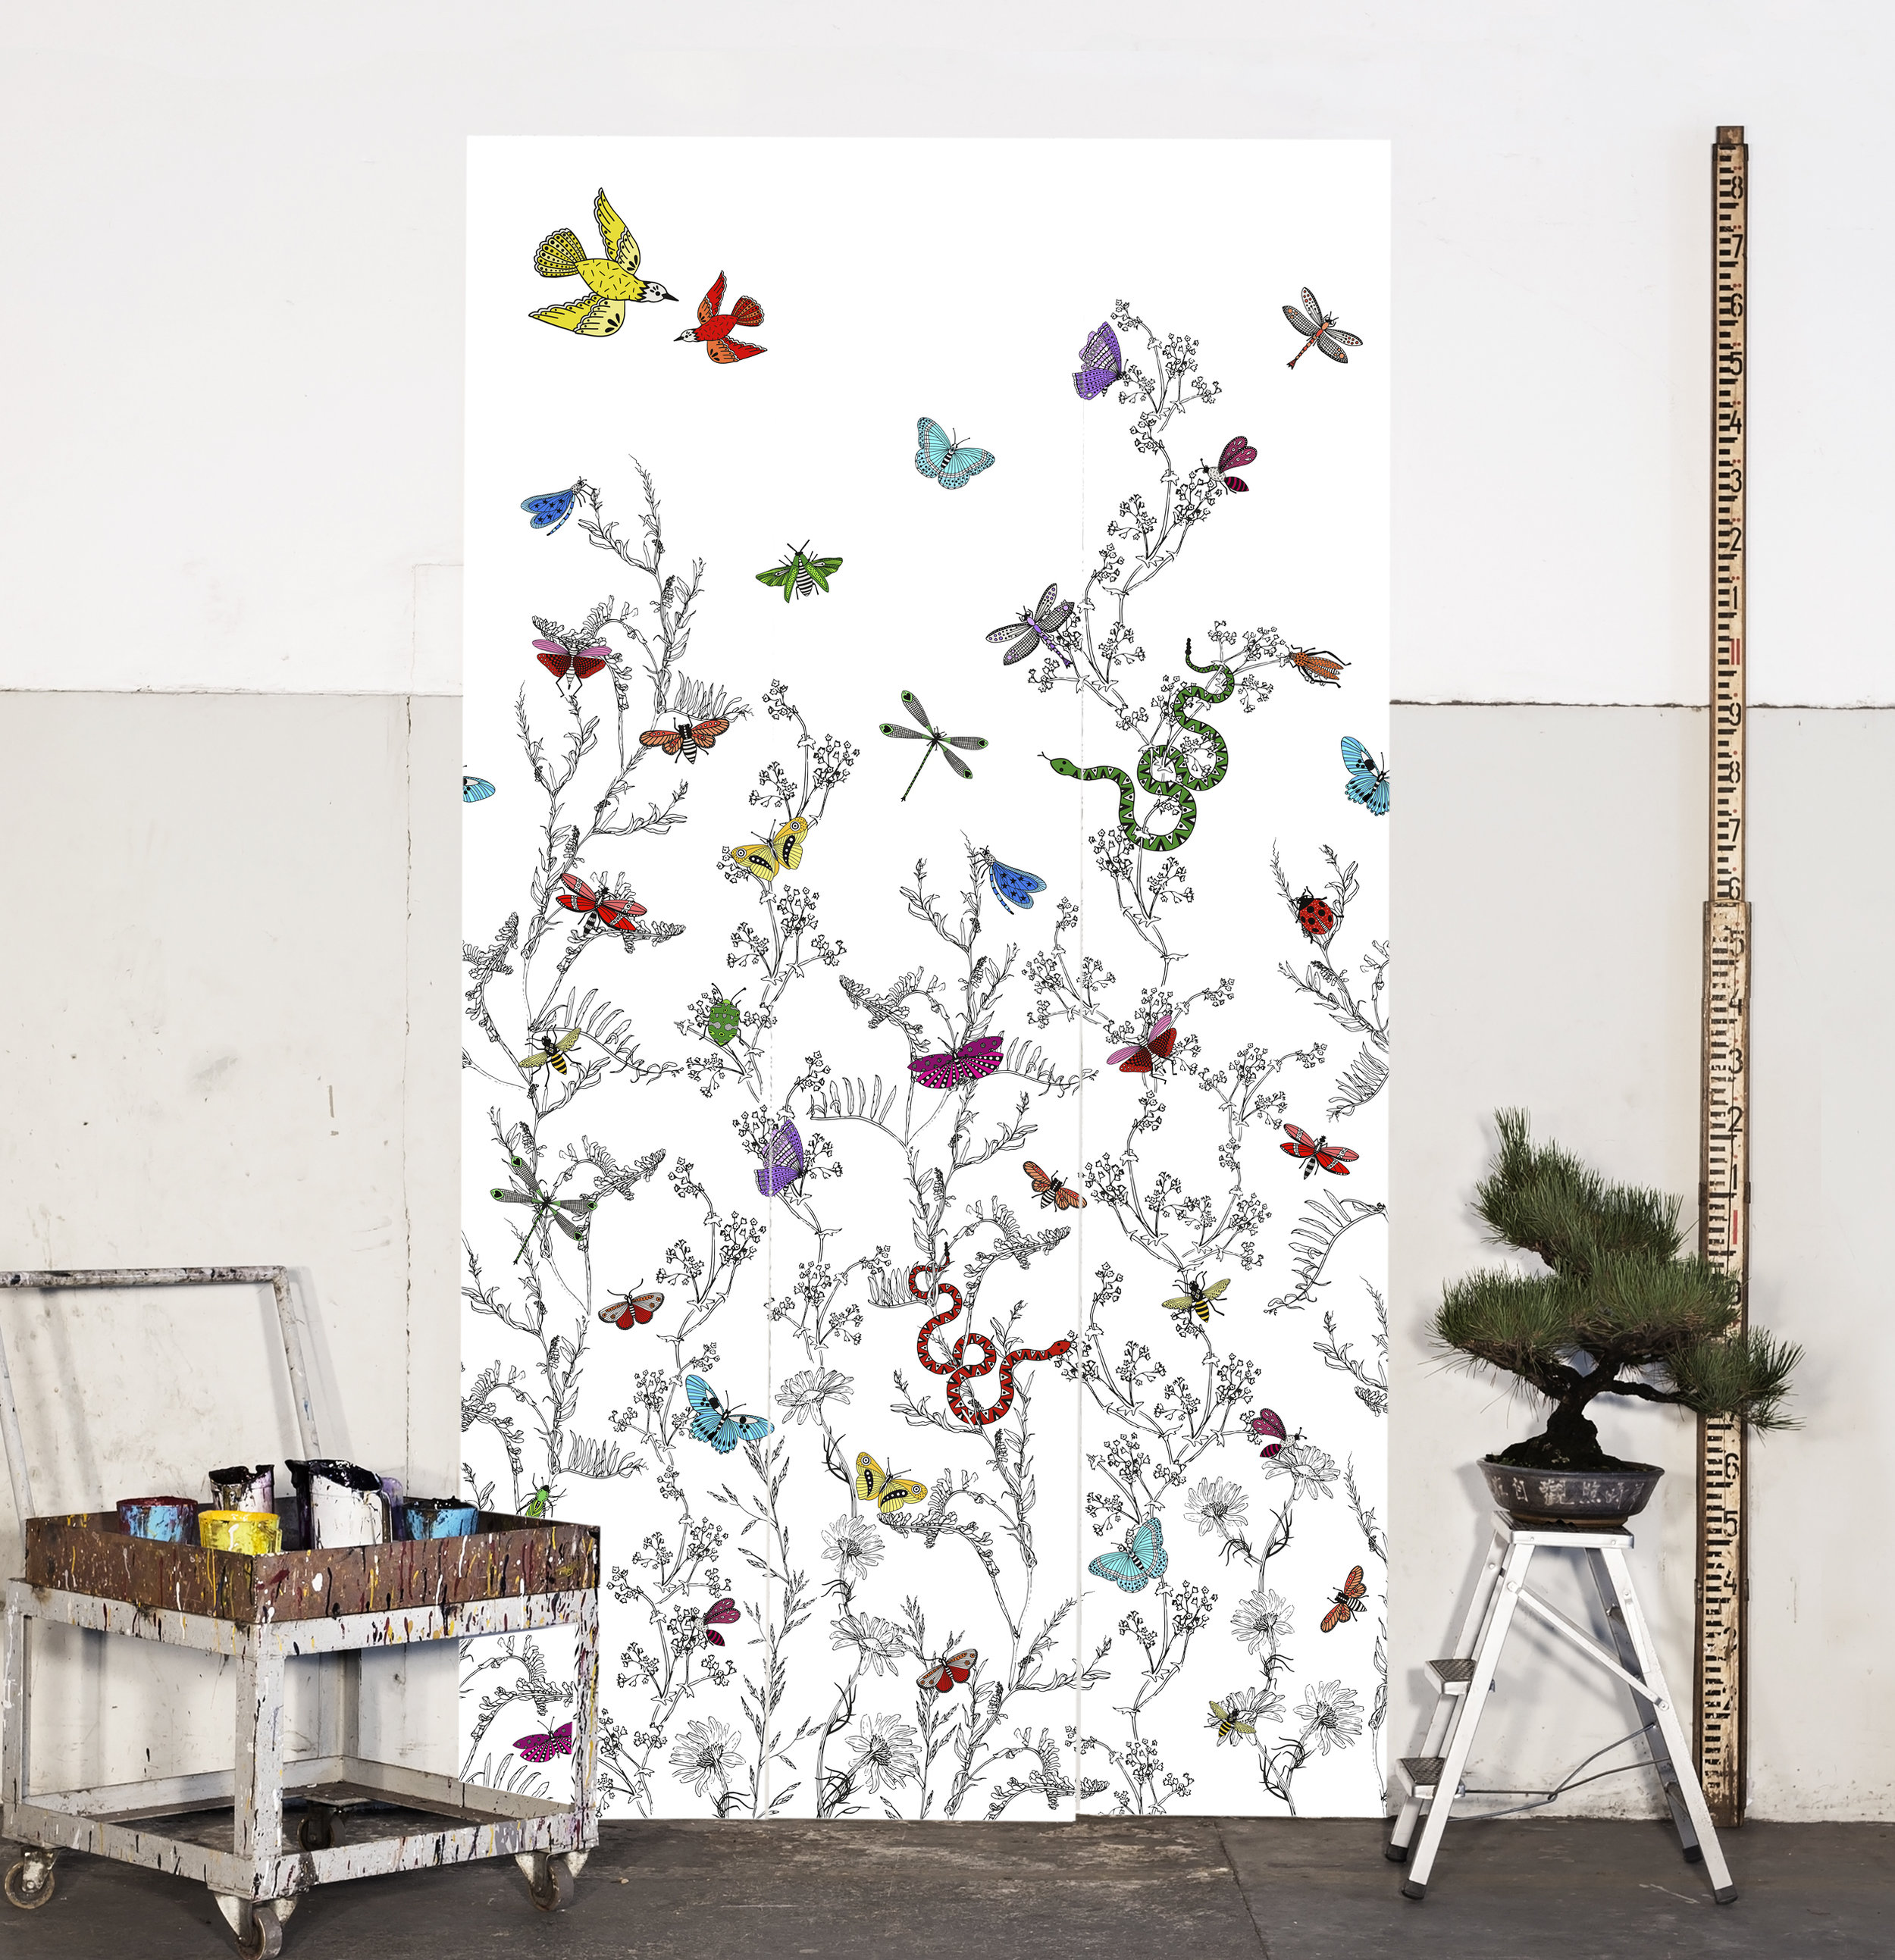 as020_bugs-painel_amb-branco.jpg